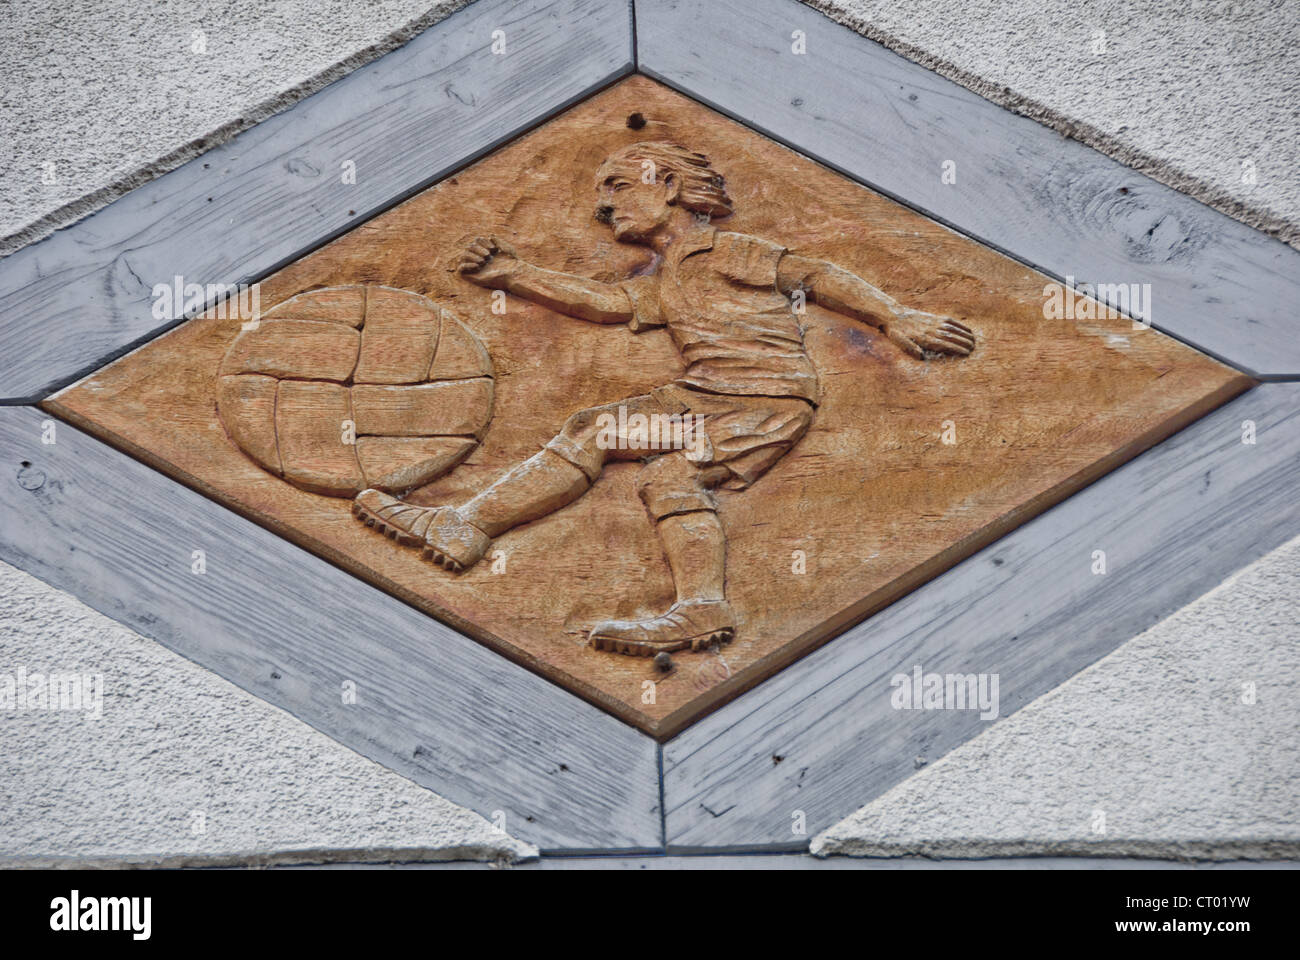 Soccer bas-relief plaque, Wertheim, Germany - Stock Image